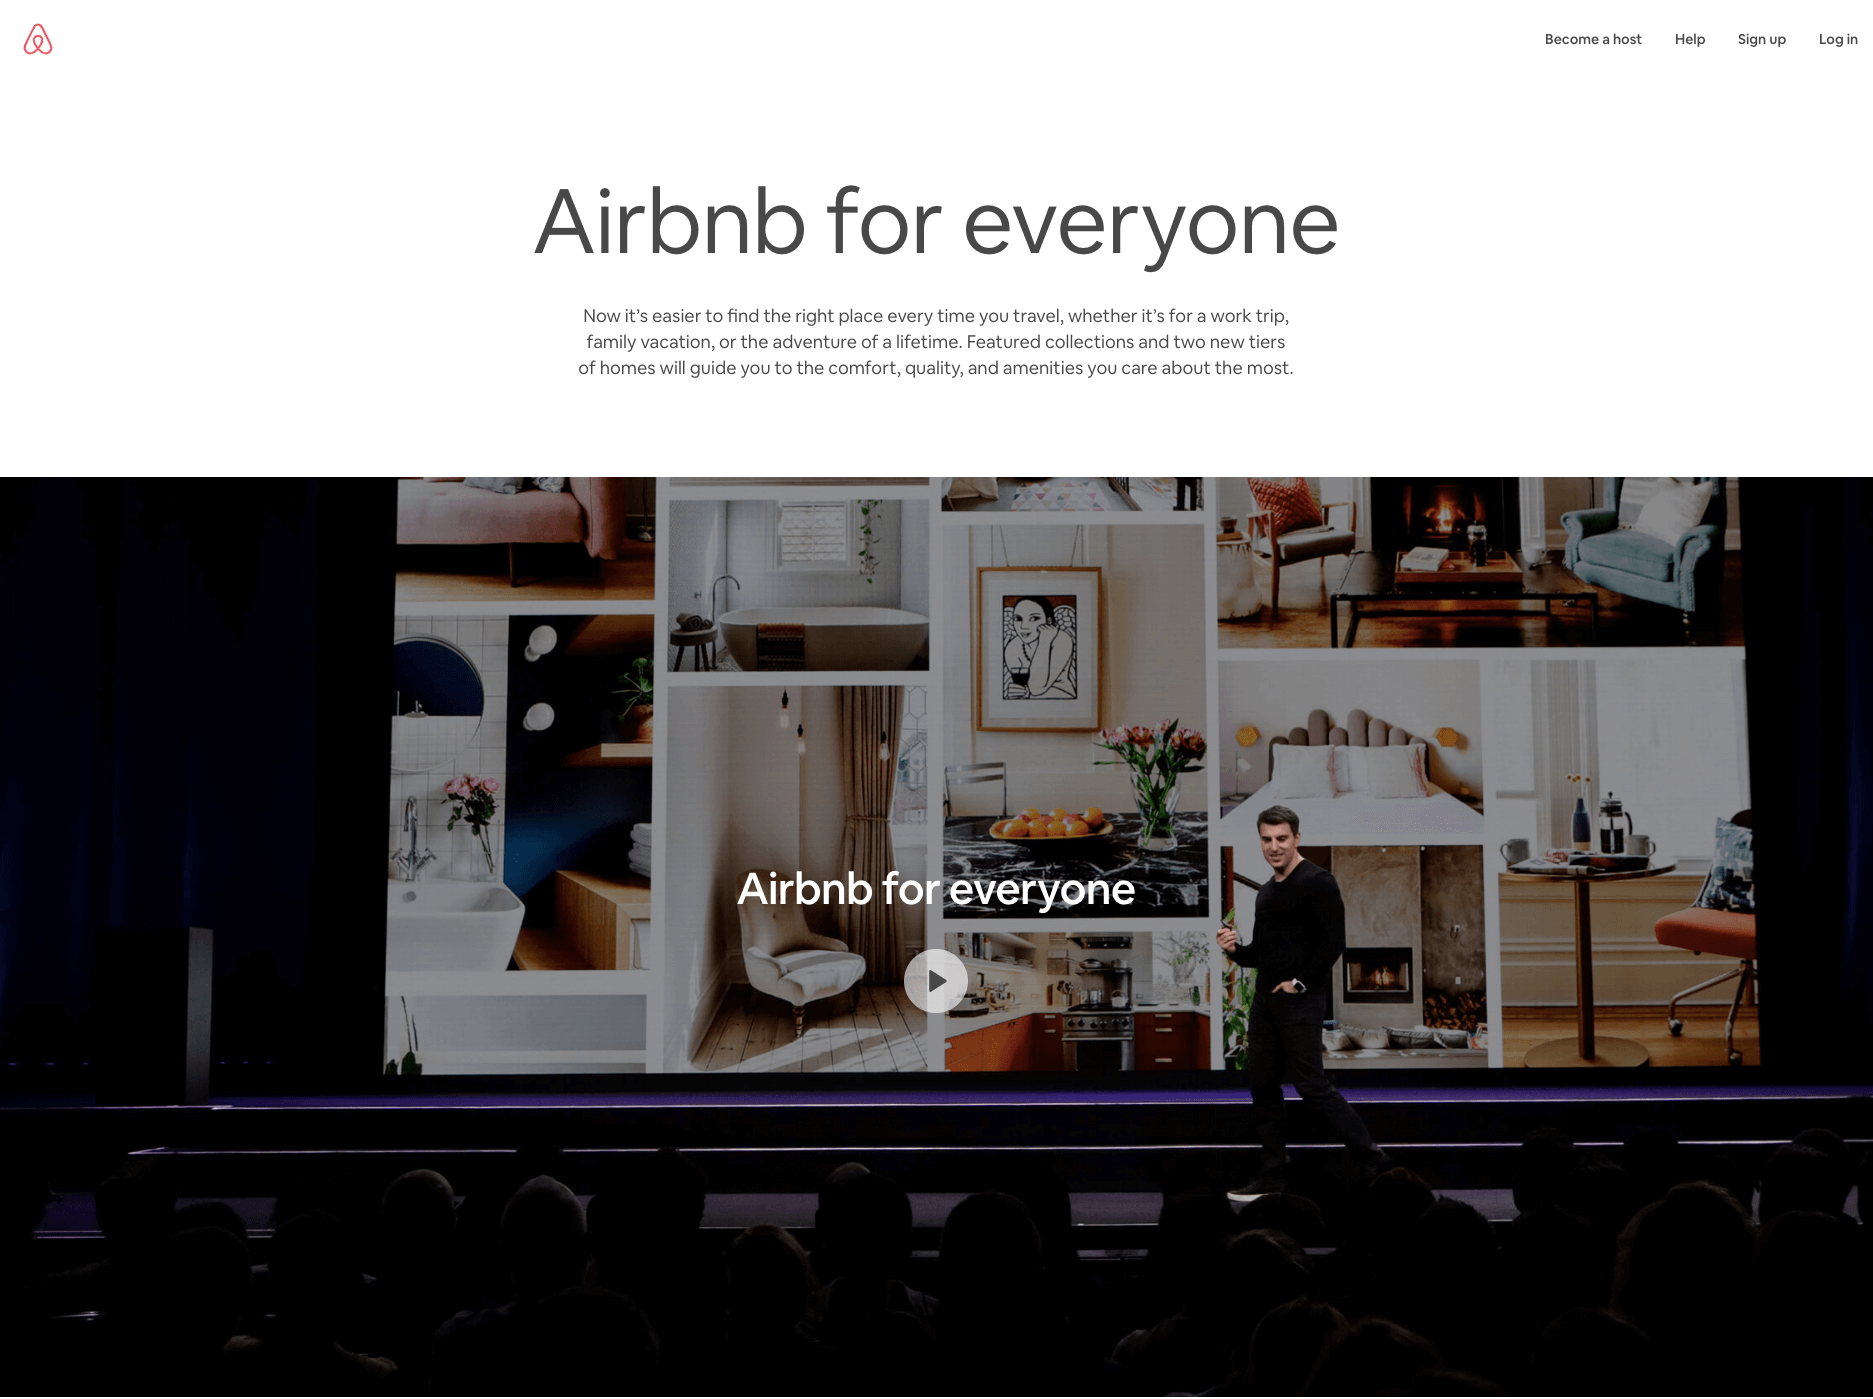 Sharing economy - airbnb for everyone